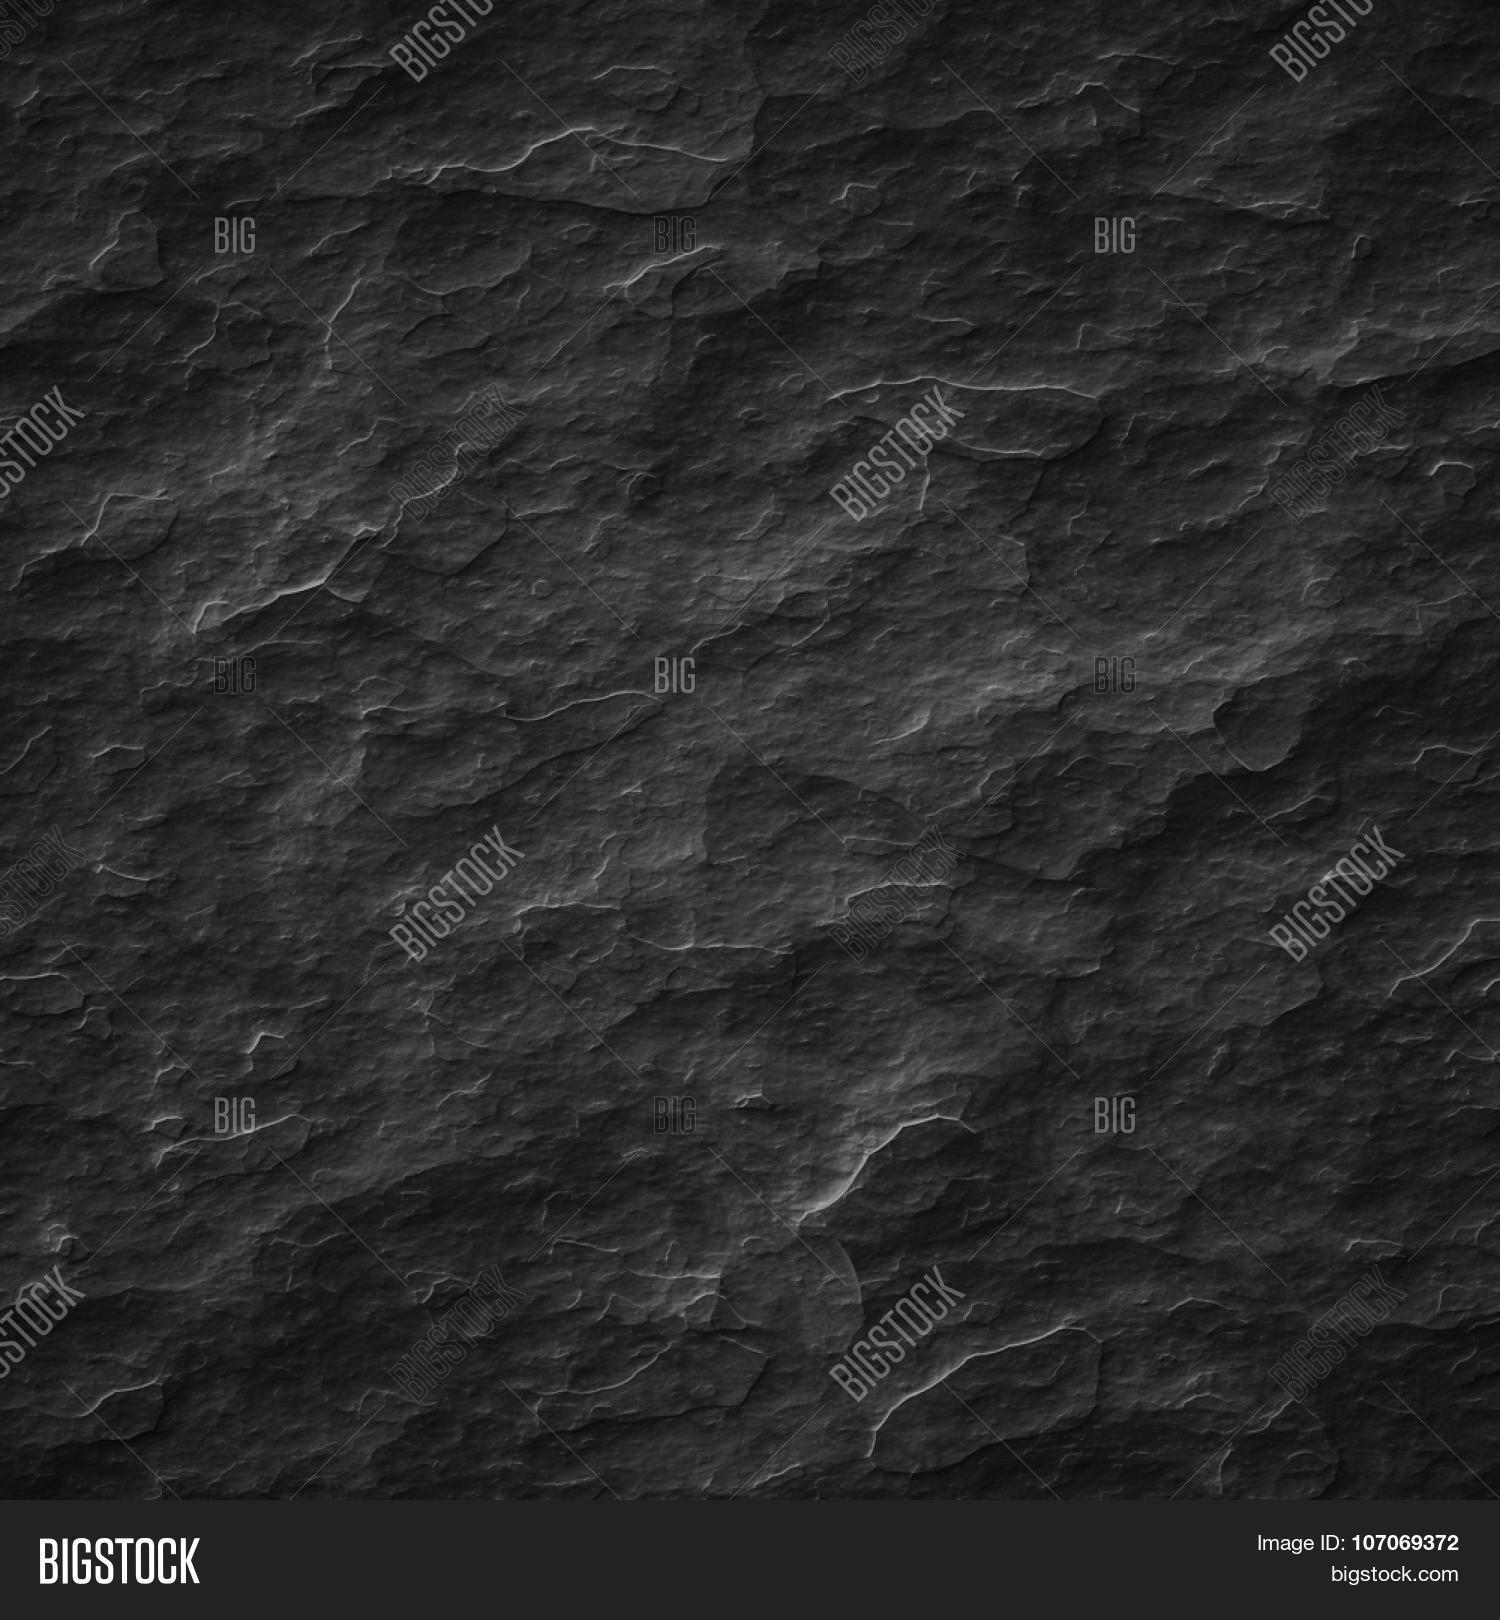 Black Slate Patter : Black slate texture background image photo bigstock